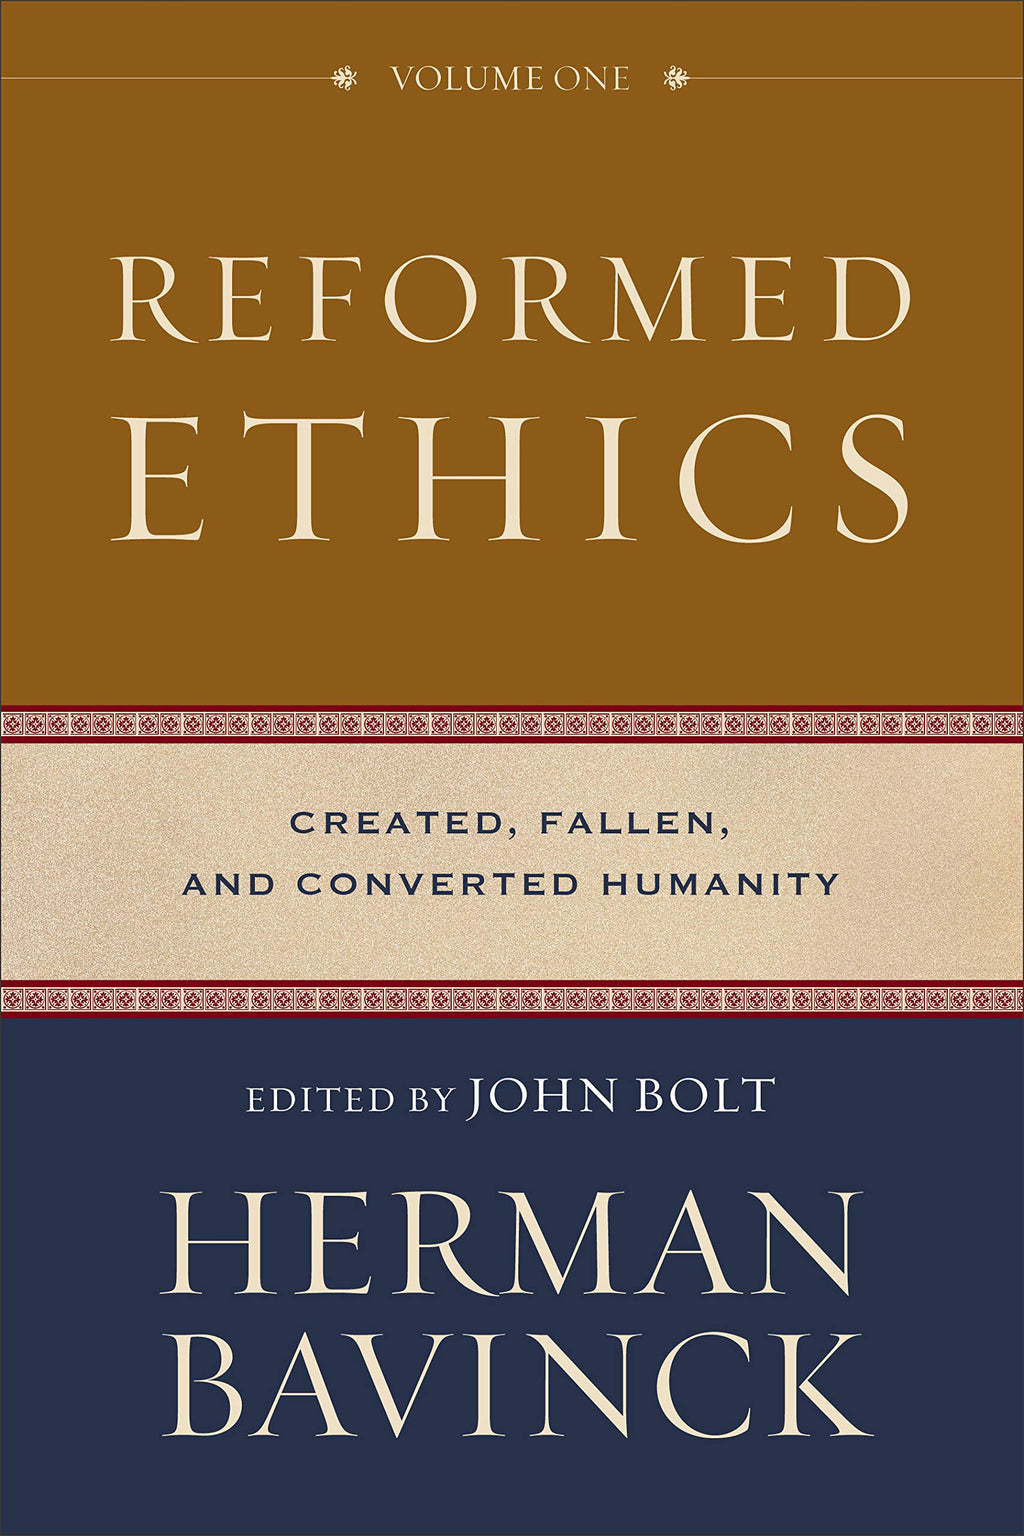 Reformed Ethics: Created, Fallen, and Converted Humanity Herman Bavinck cover image